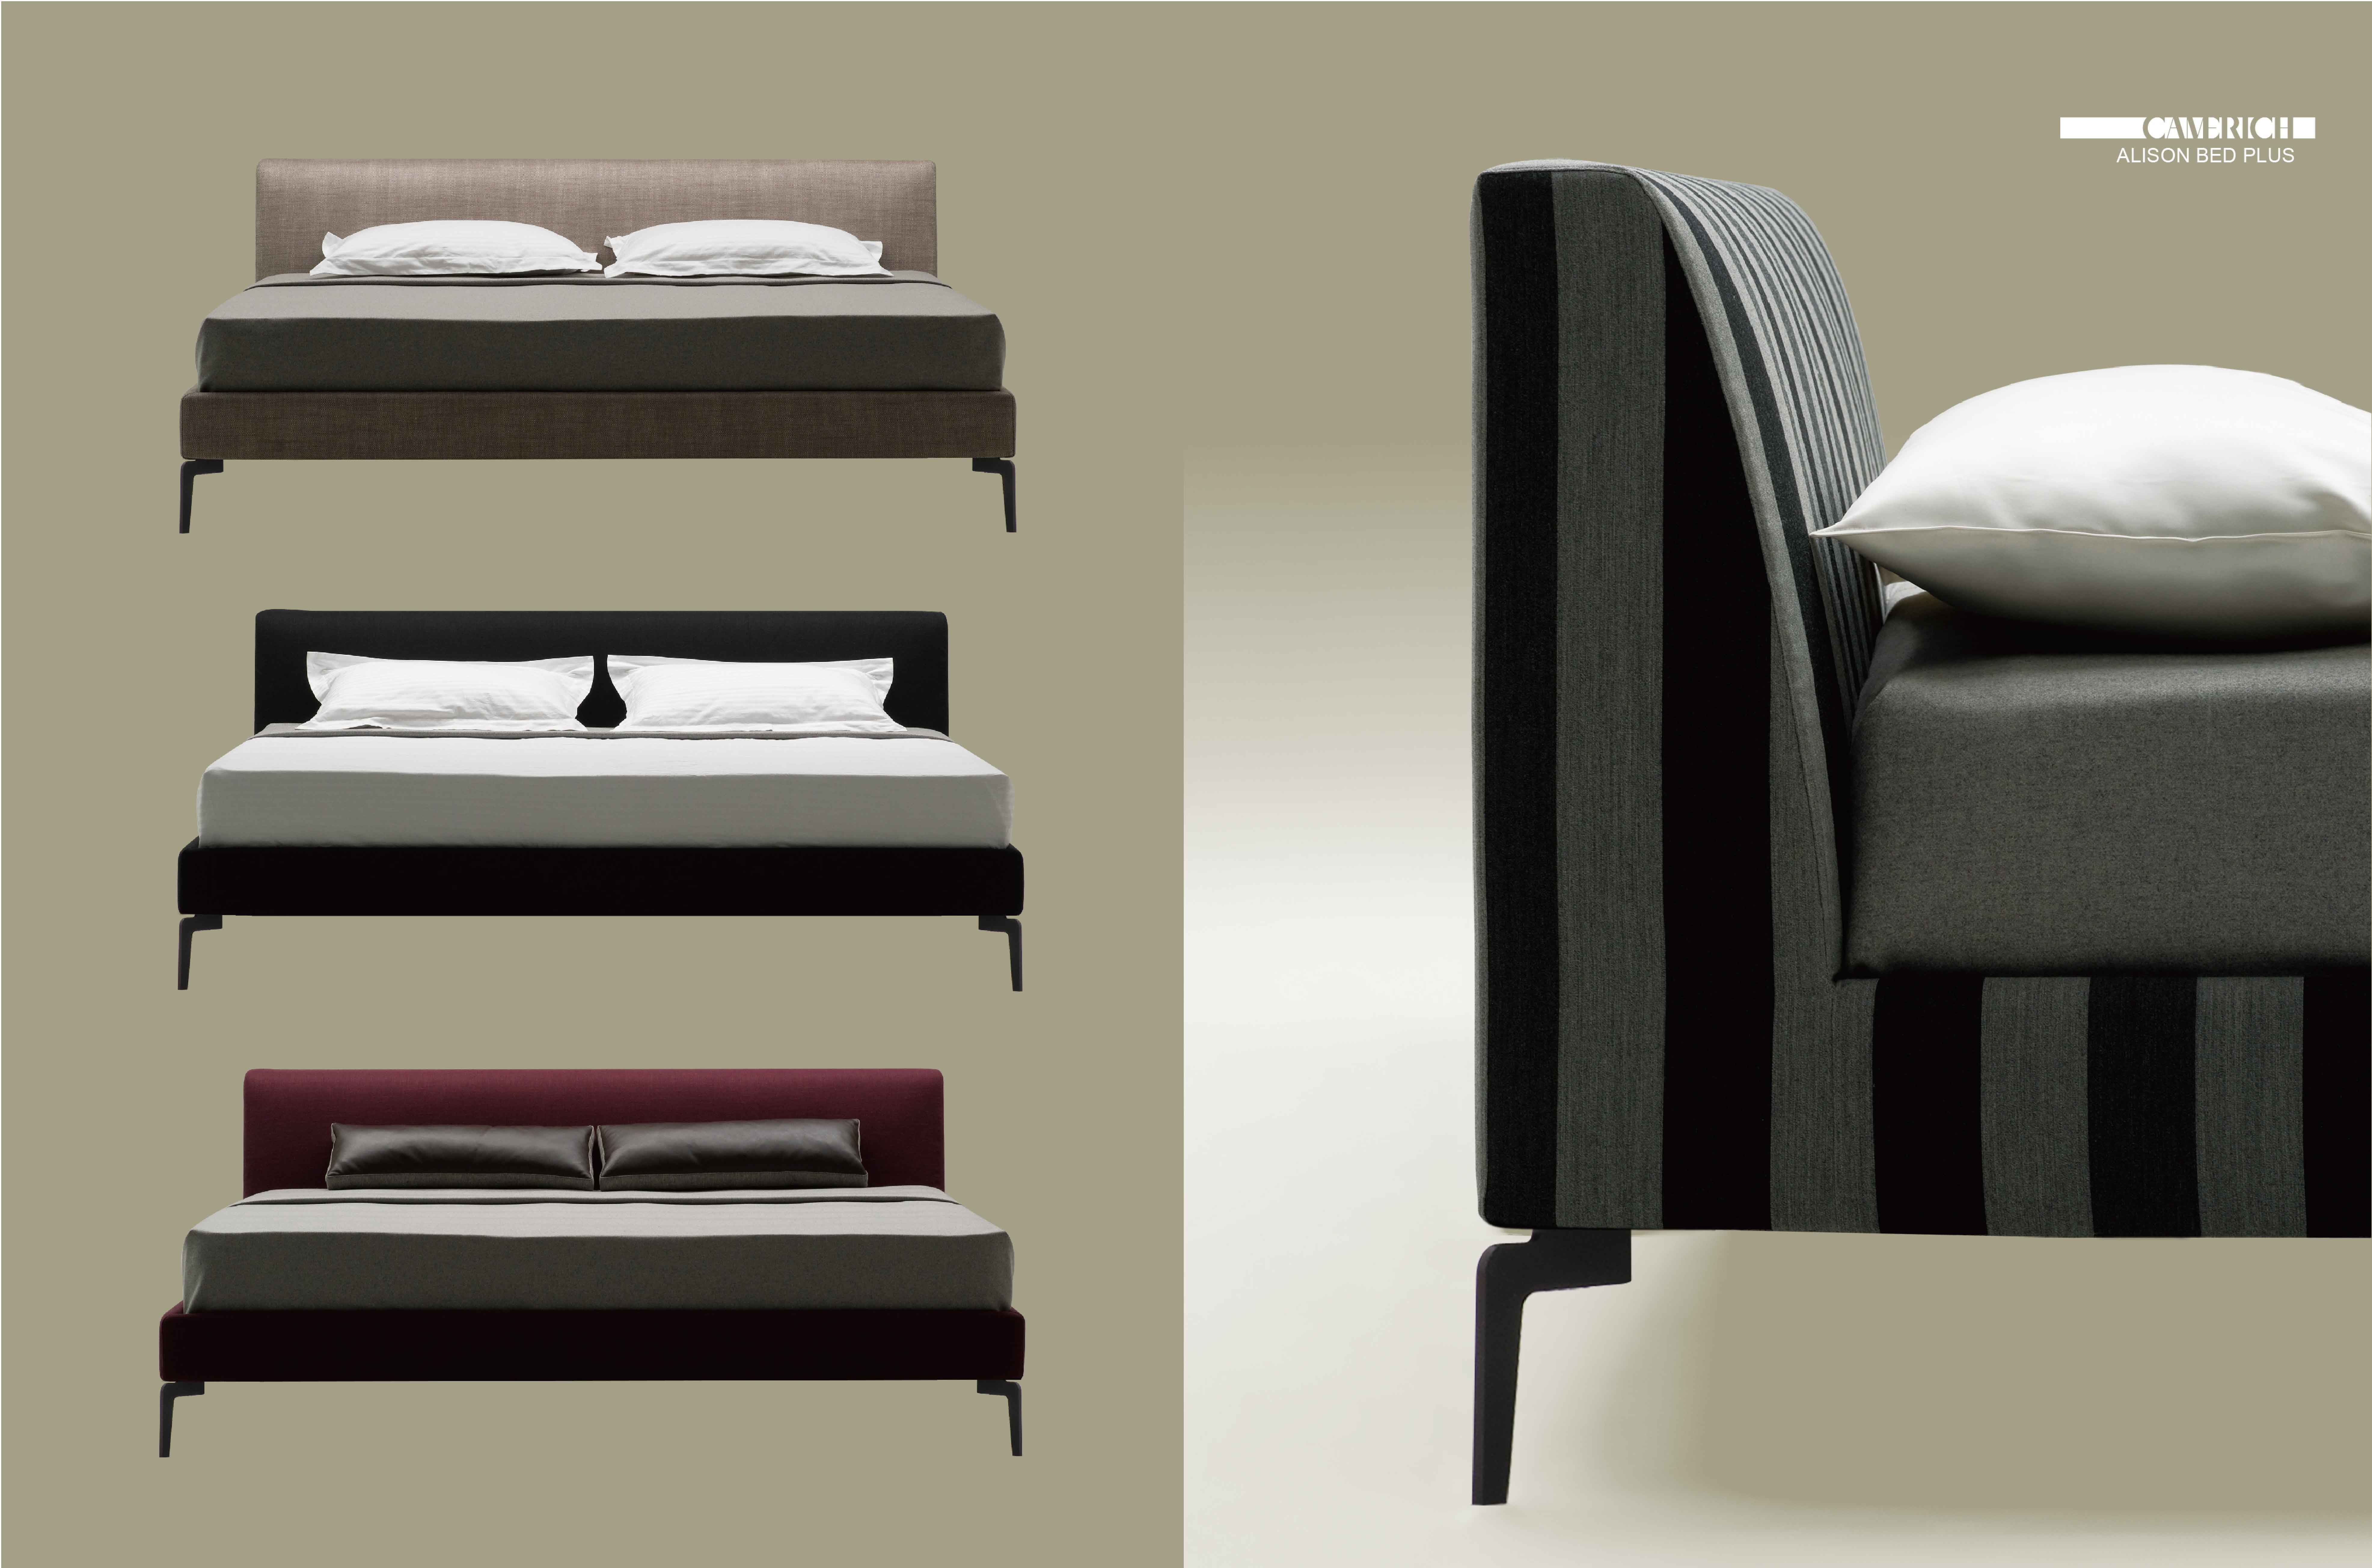 Alison Bed Plus Camerich Bangladesh